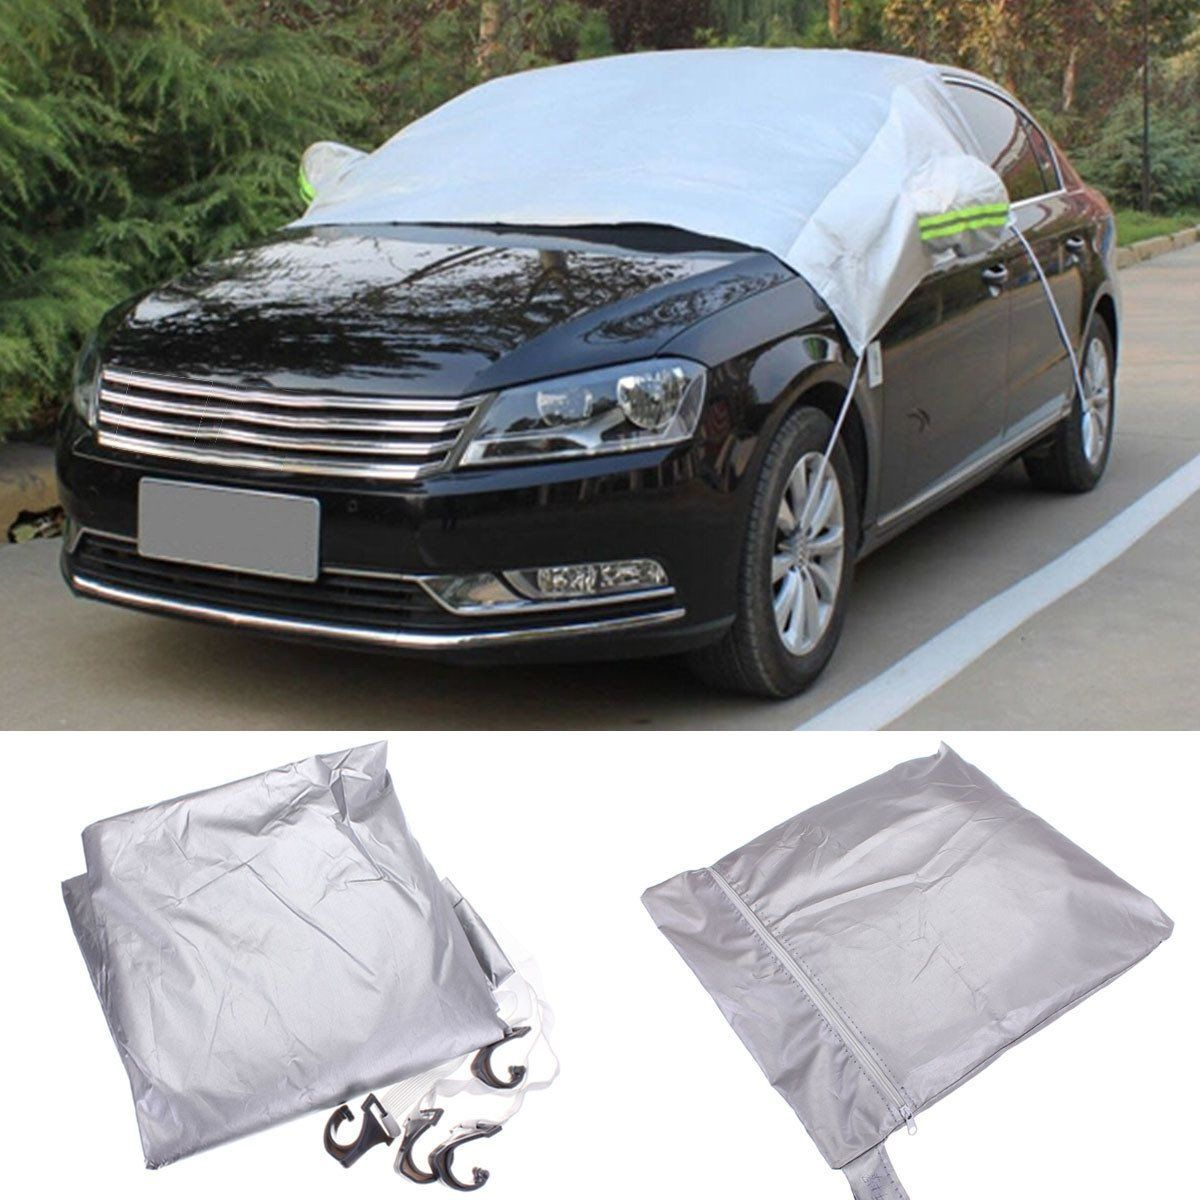 238x169cm Car Windscreen Cover Heat Sun Shade Anti Snow Frost Ice Shield Dust Protector Universal